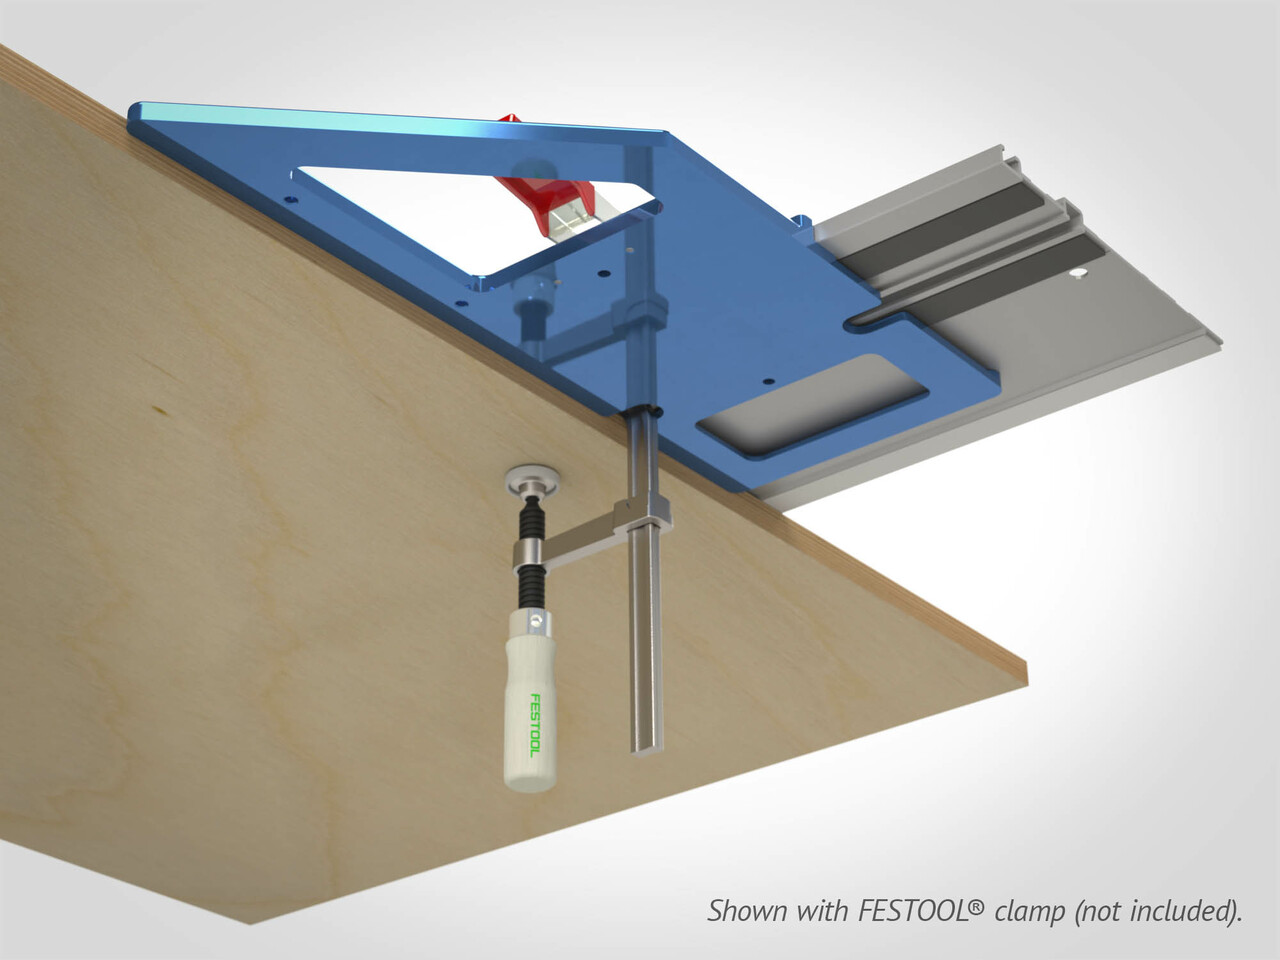 Integrated clamping slot enables use of Festool's screw or rapid clamps.